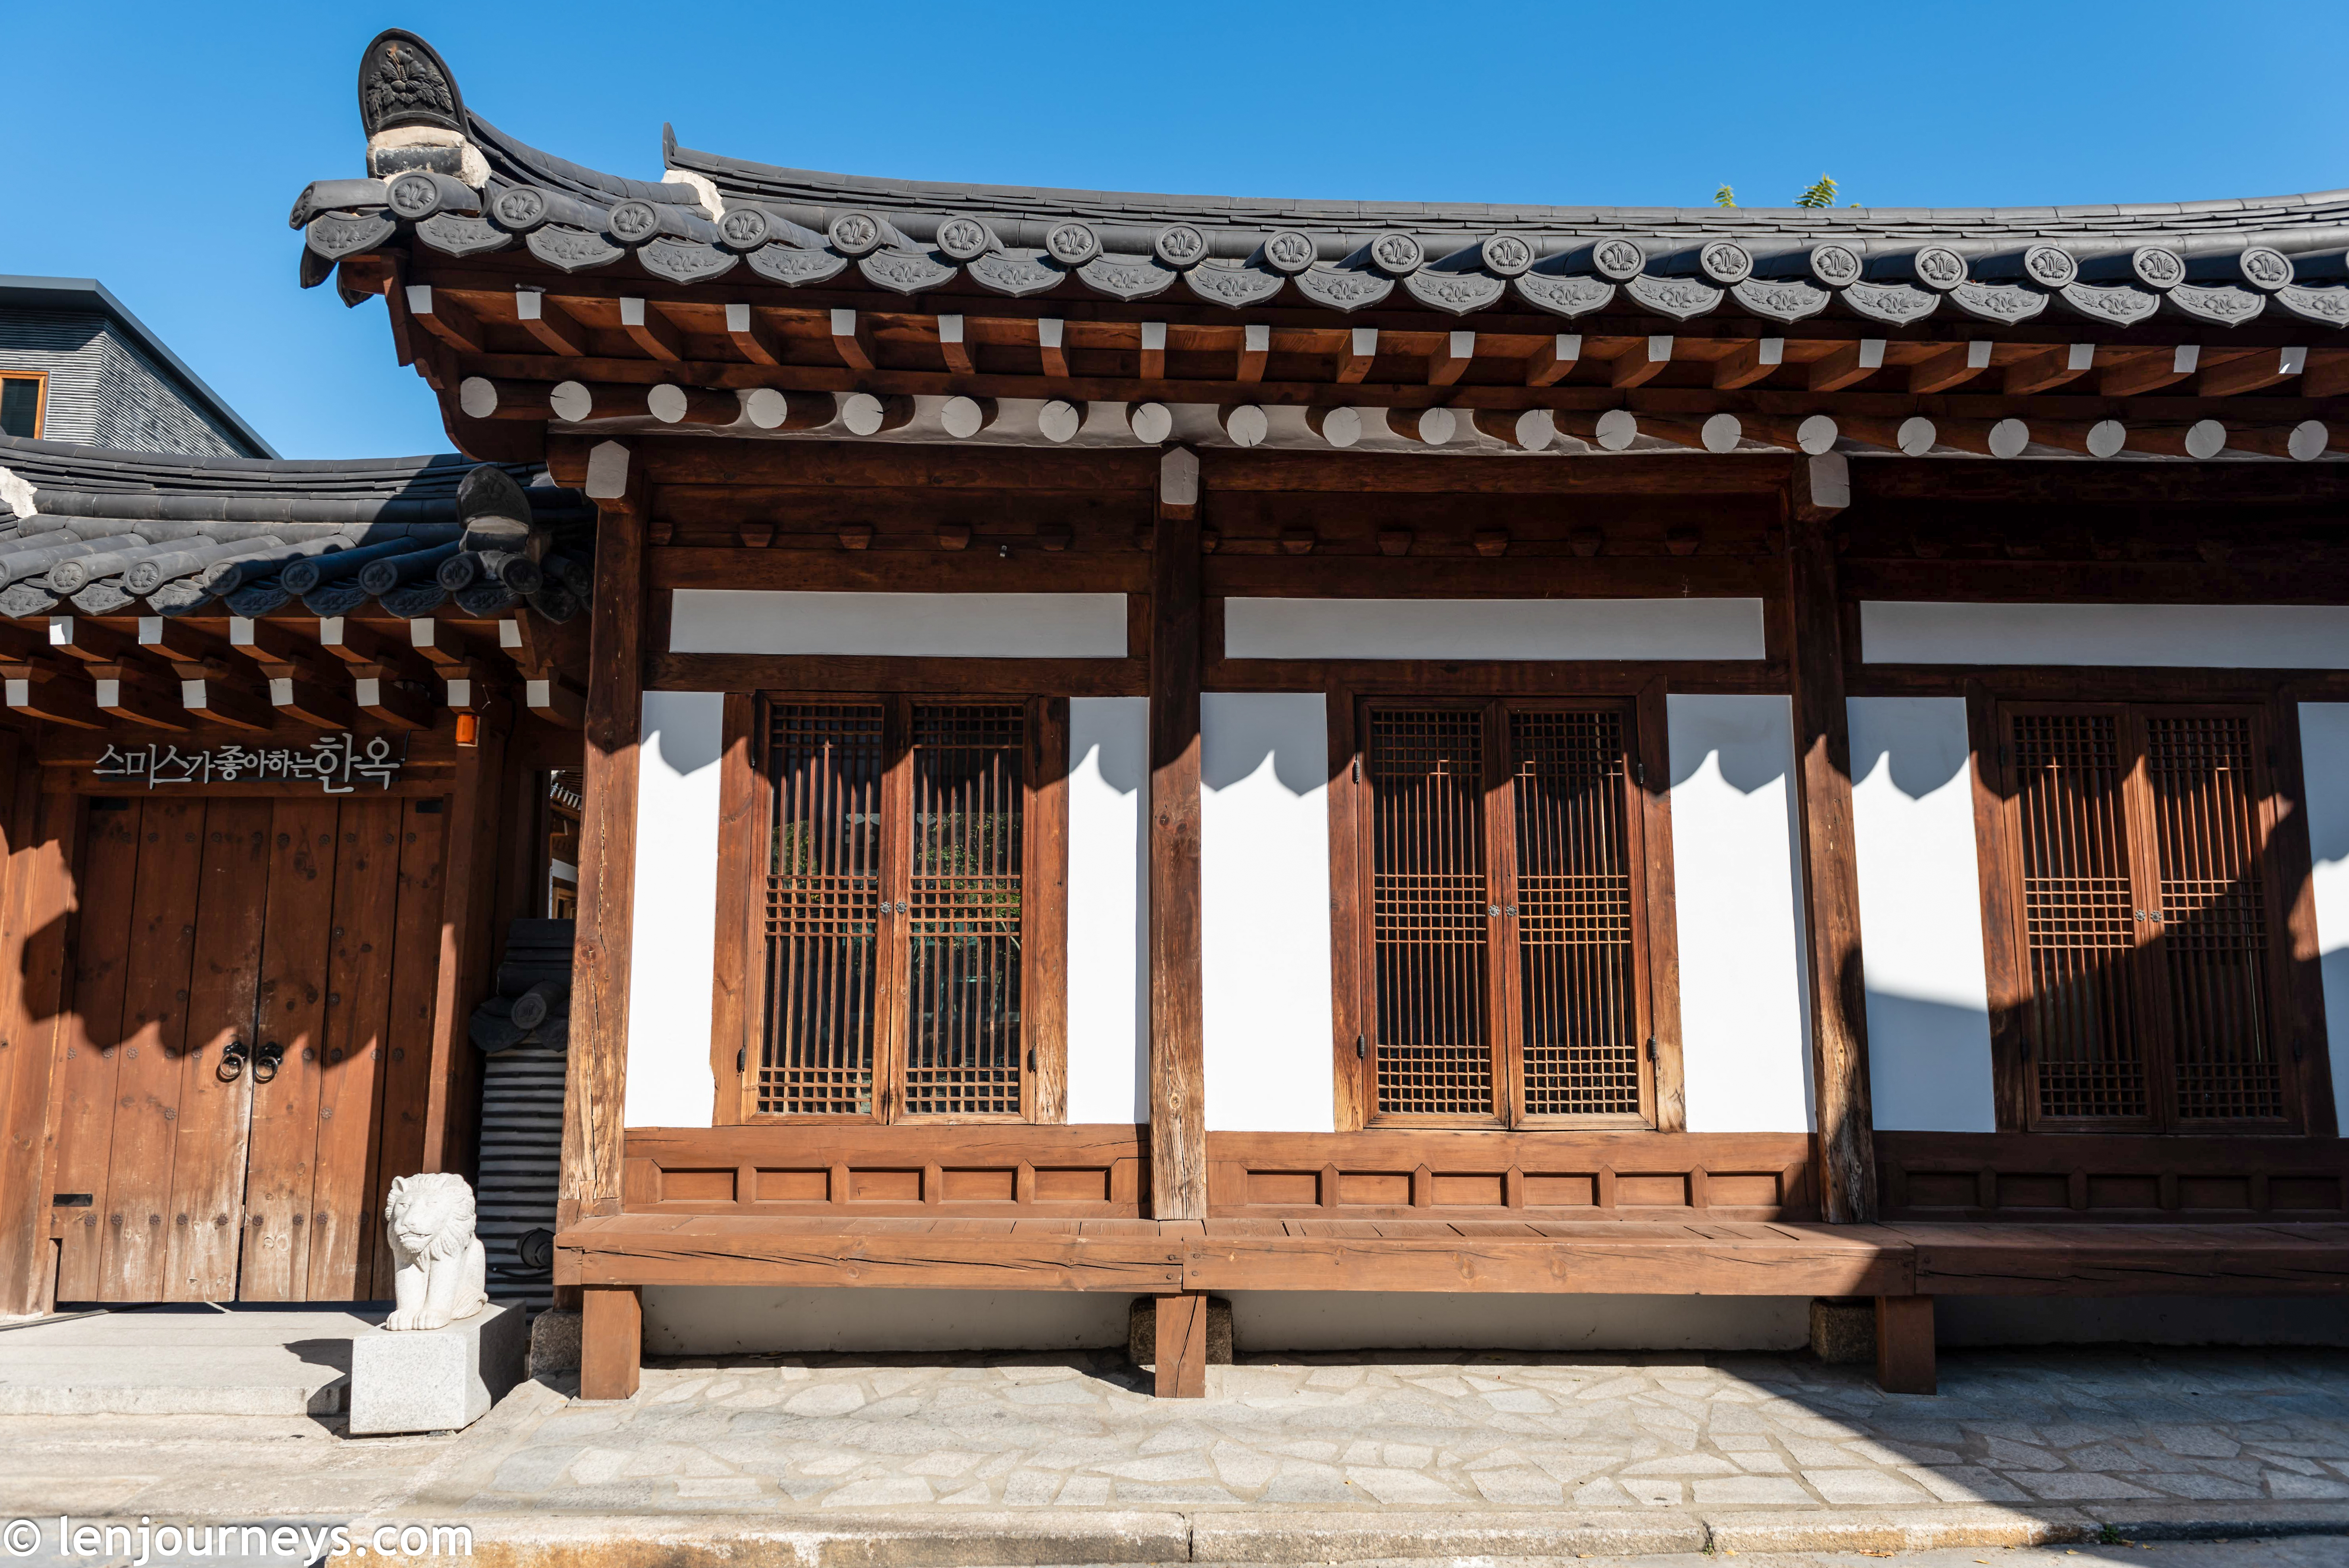 A typical hanok